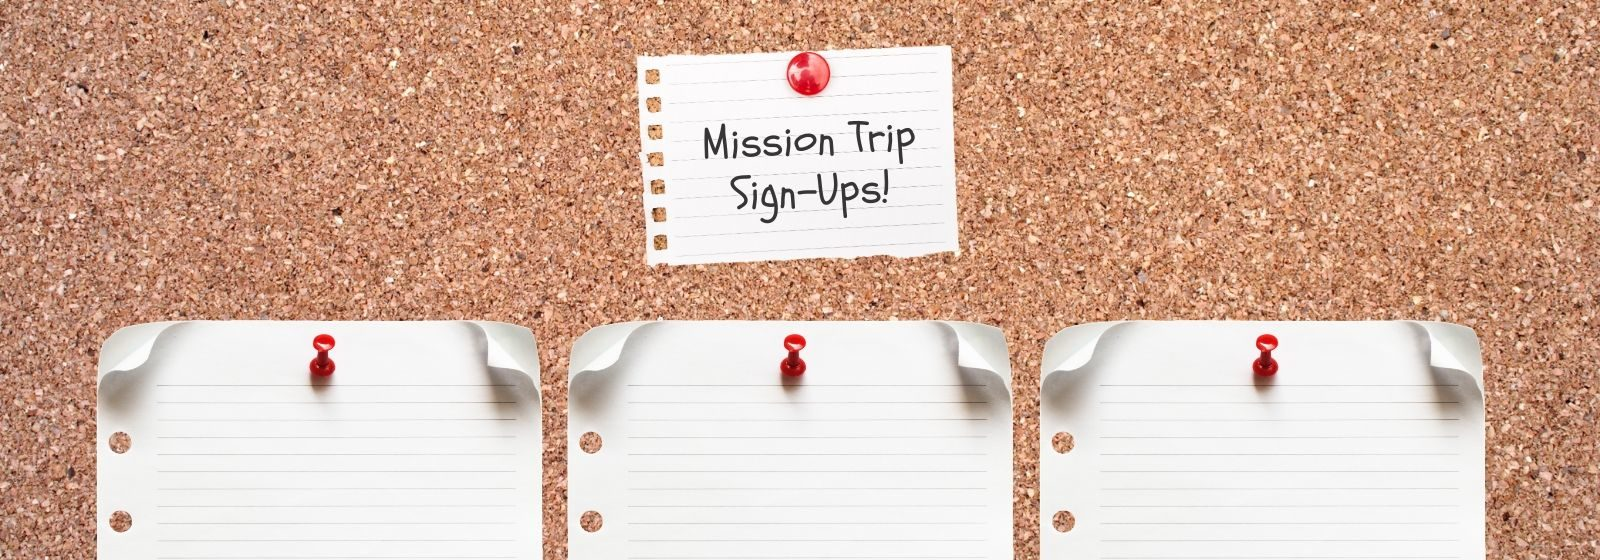 sign up sheet for mission trip